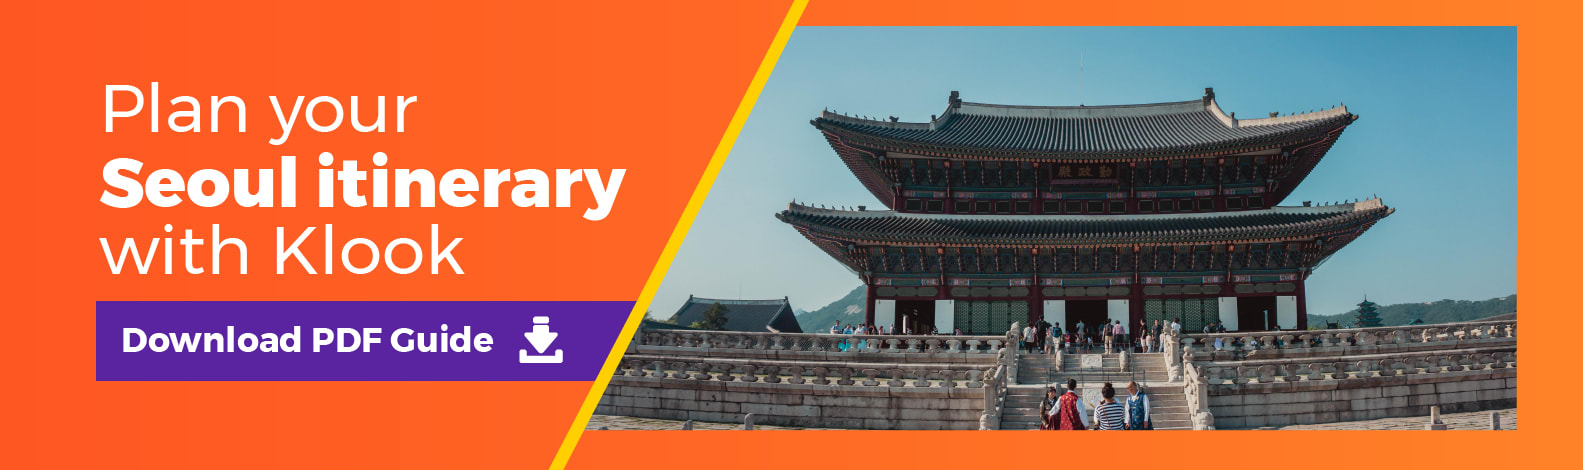 MY] 7D6N Seoul Itinerary - Klook Event